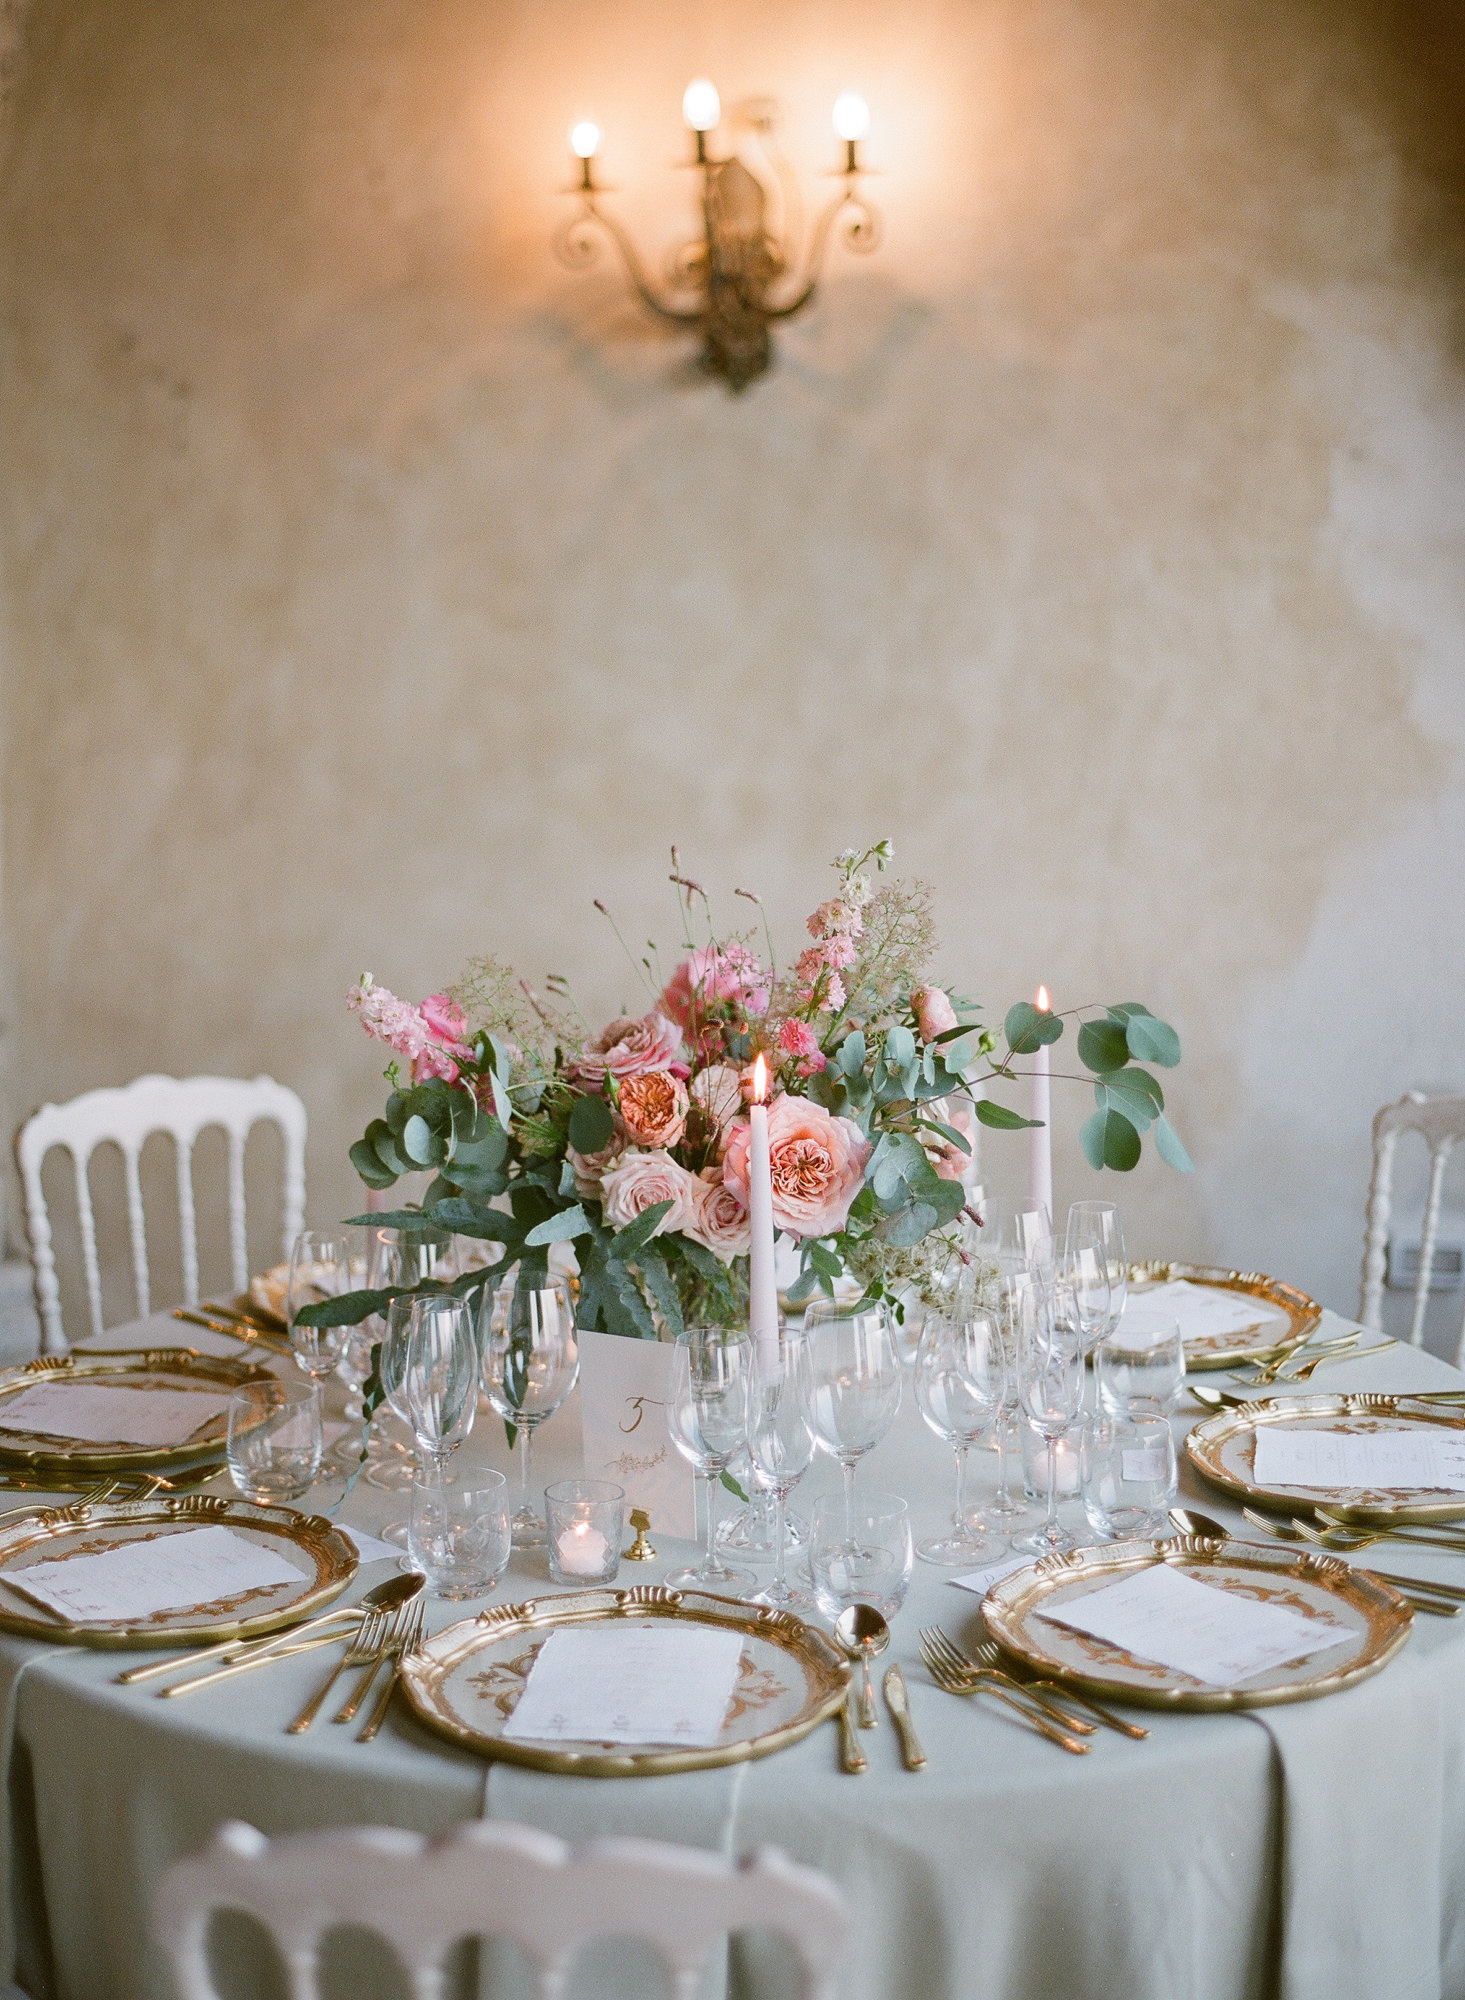 Romantic table setting with pink rose and delphinium bouquet- photo by Gianluca Adovasio Photography